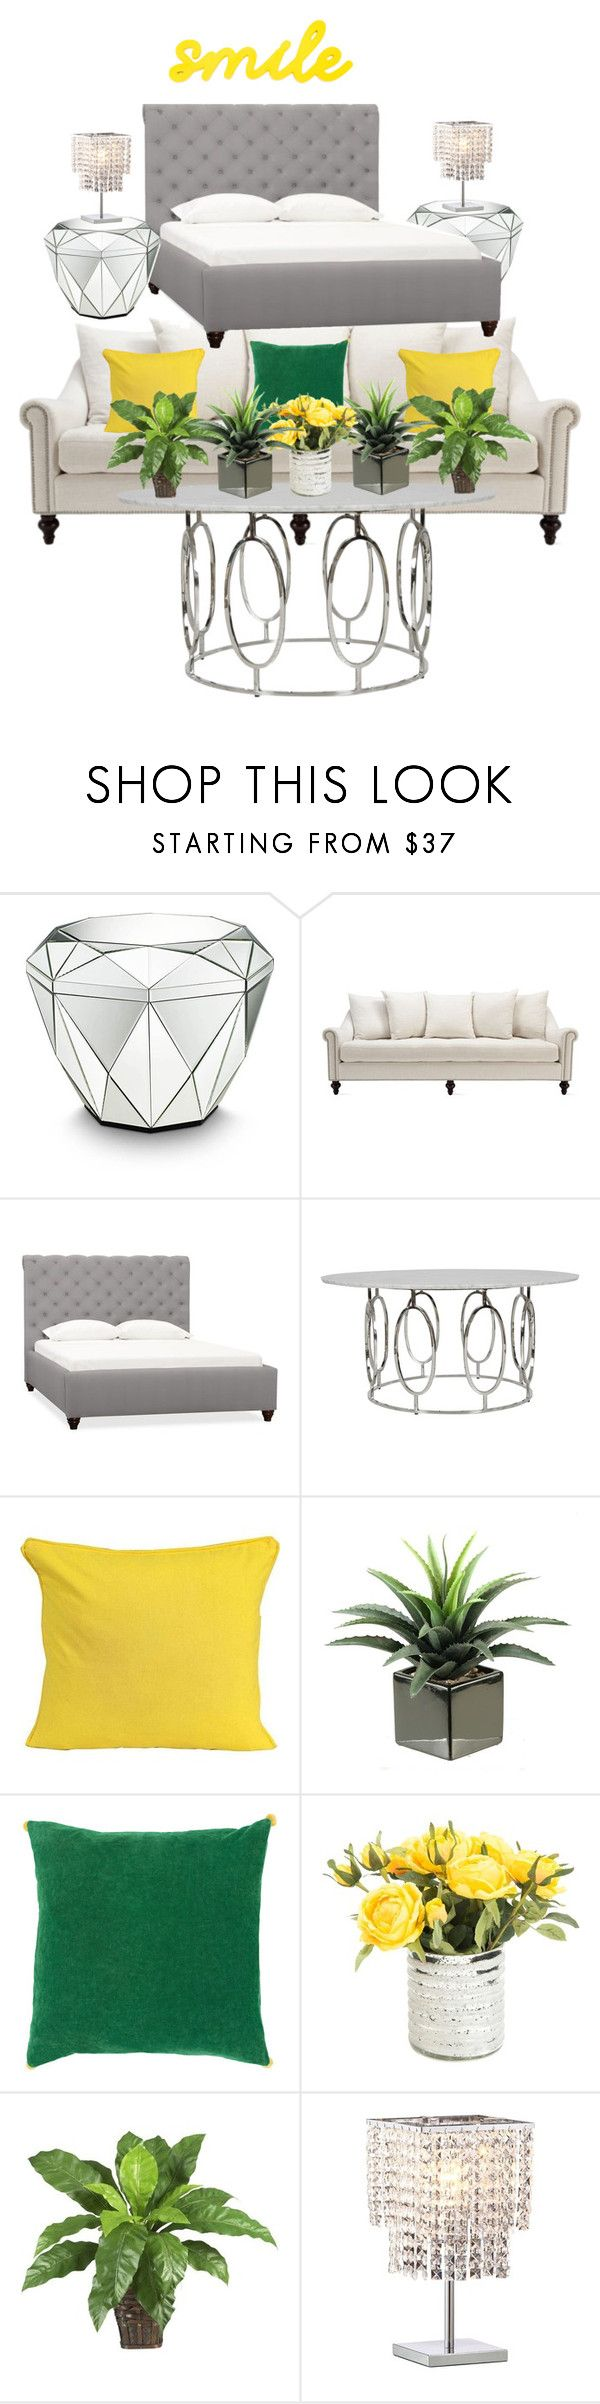 """""""Stylish and elegant parents bedroom"""" by franze-lotter ❤ liked on Polyvore featuring interior, interiors, interior design, home, home decor, interior decorating, Amara, Pottery Barn, Décor 140 and Nearly Natural"""